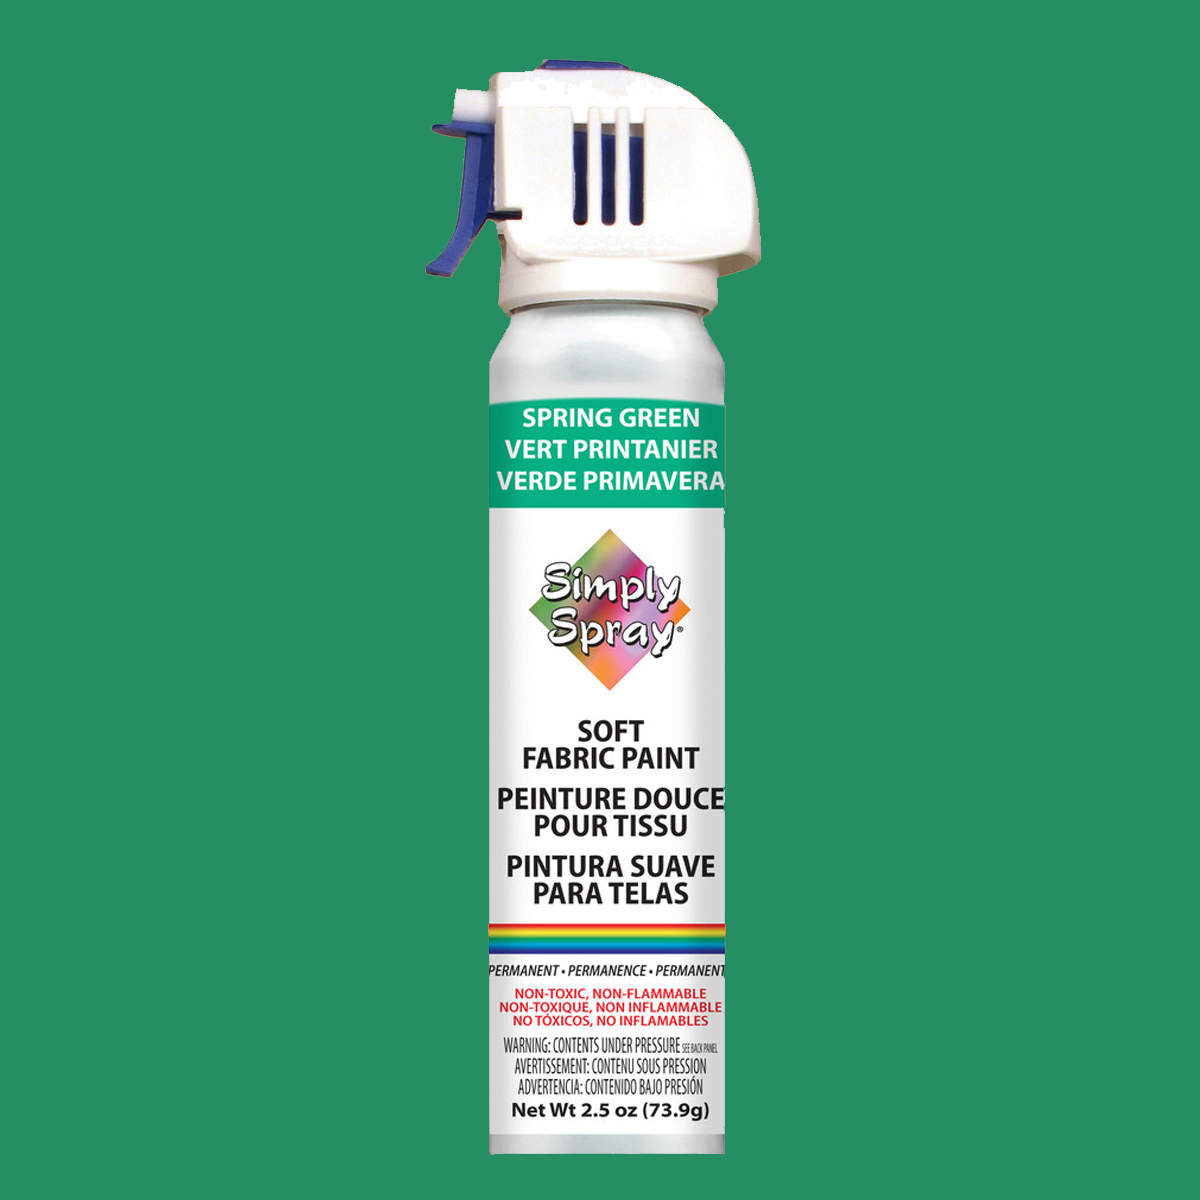 Soft simply spray spring green colour, fabric paint for clothing and garments restoration